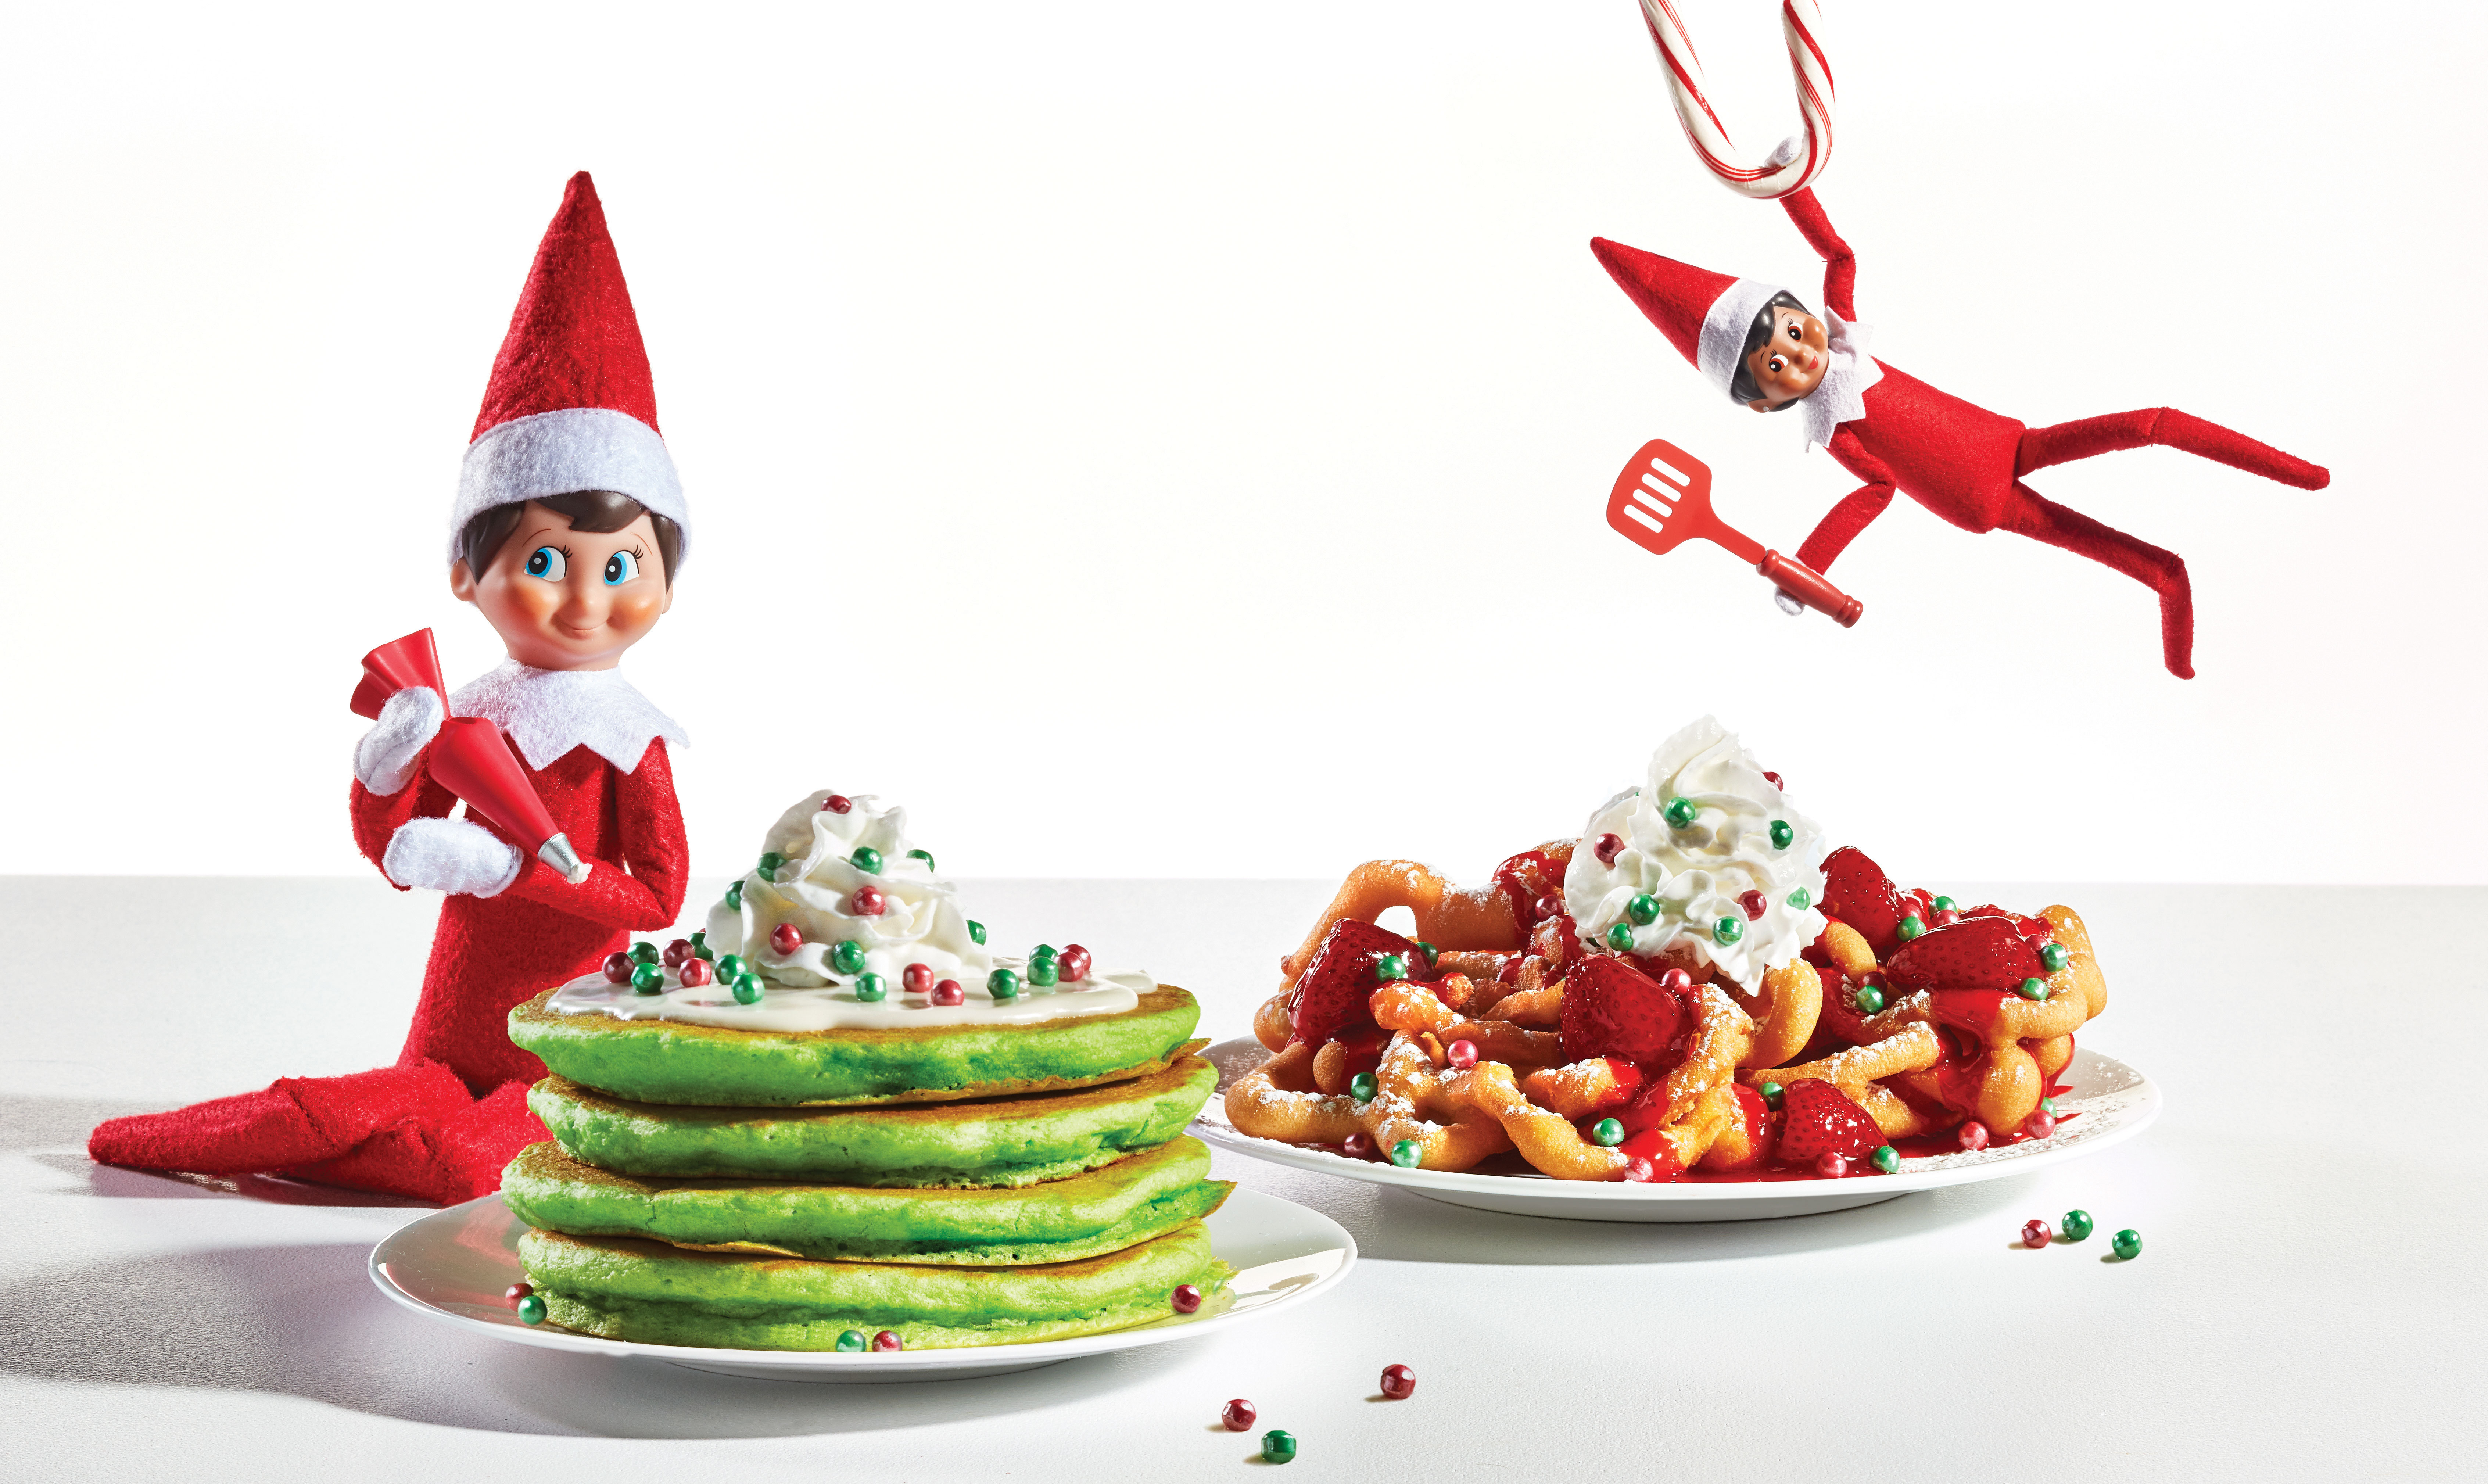 Ihop Hours Christmas Day 2020 IHOP® Partners With The Elf on the Shelf® to Create a Magical